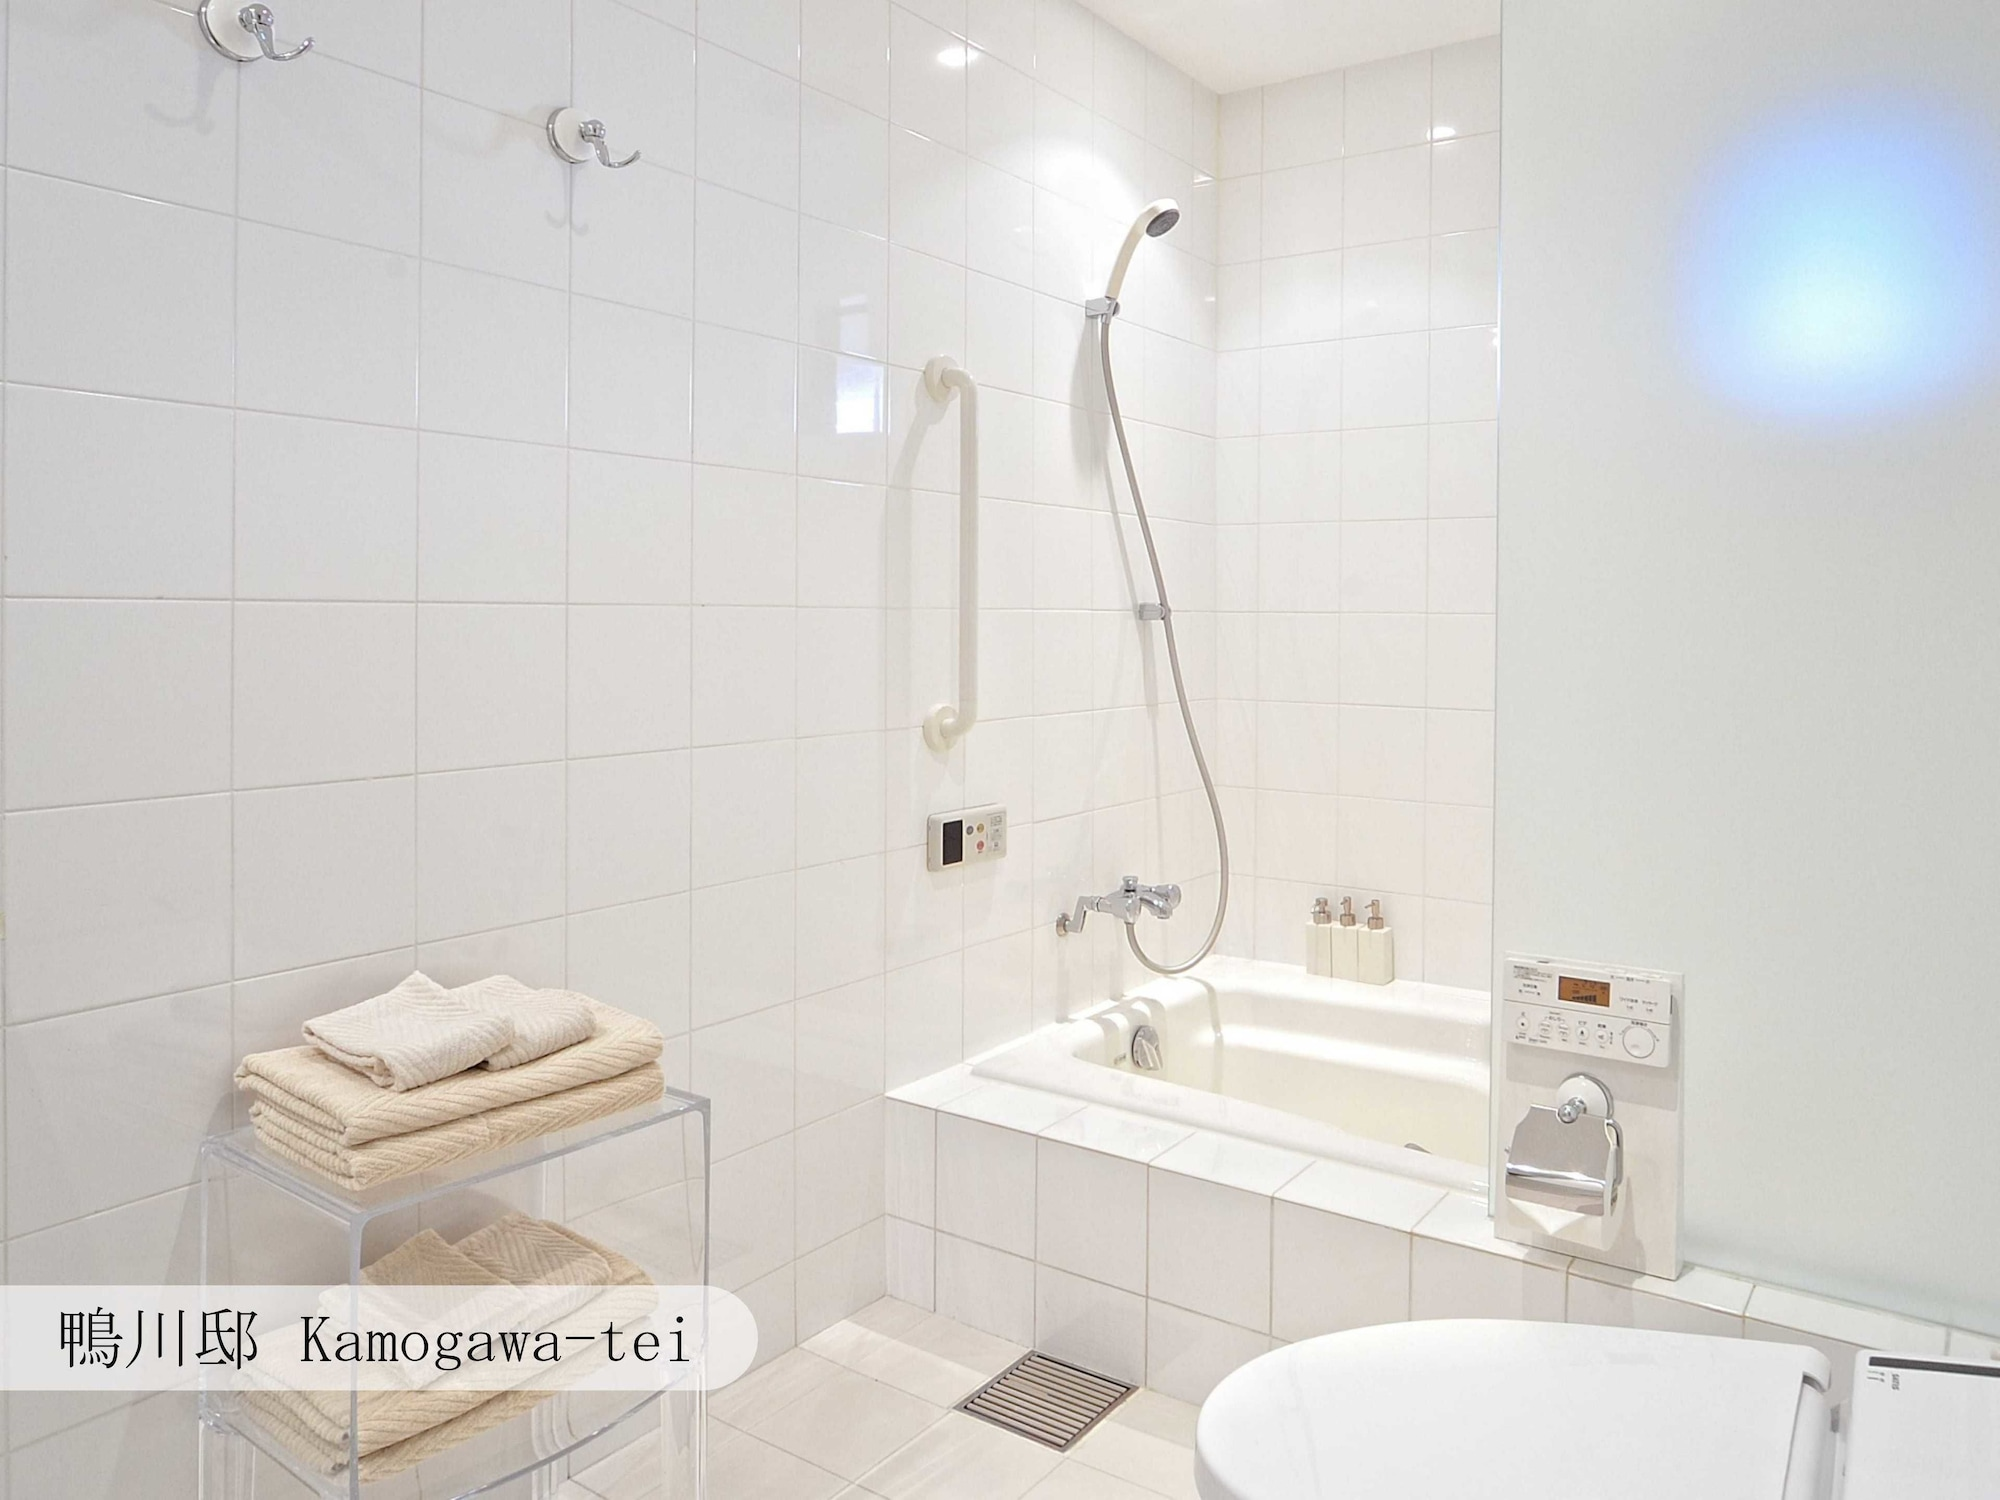 Kamogawa-tei Townhouse (Check-in by 6 PM)